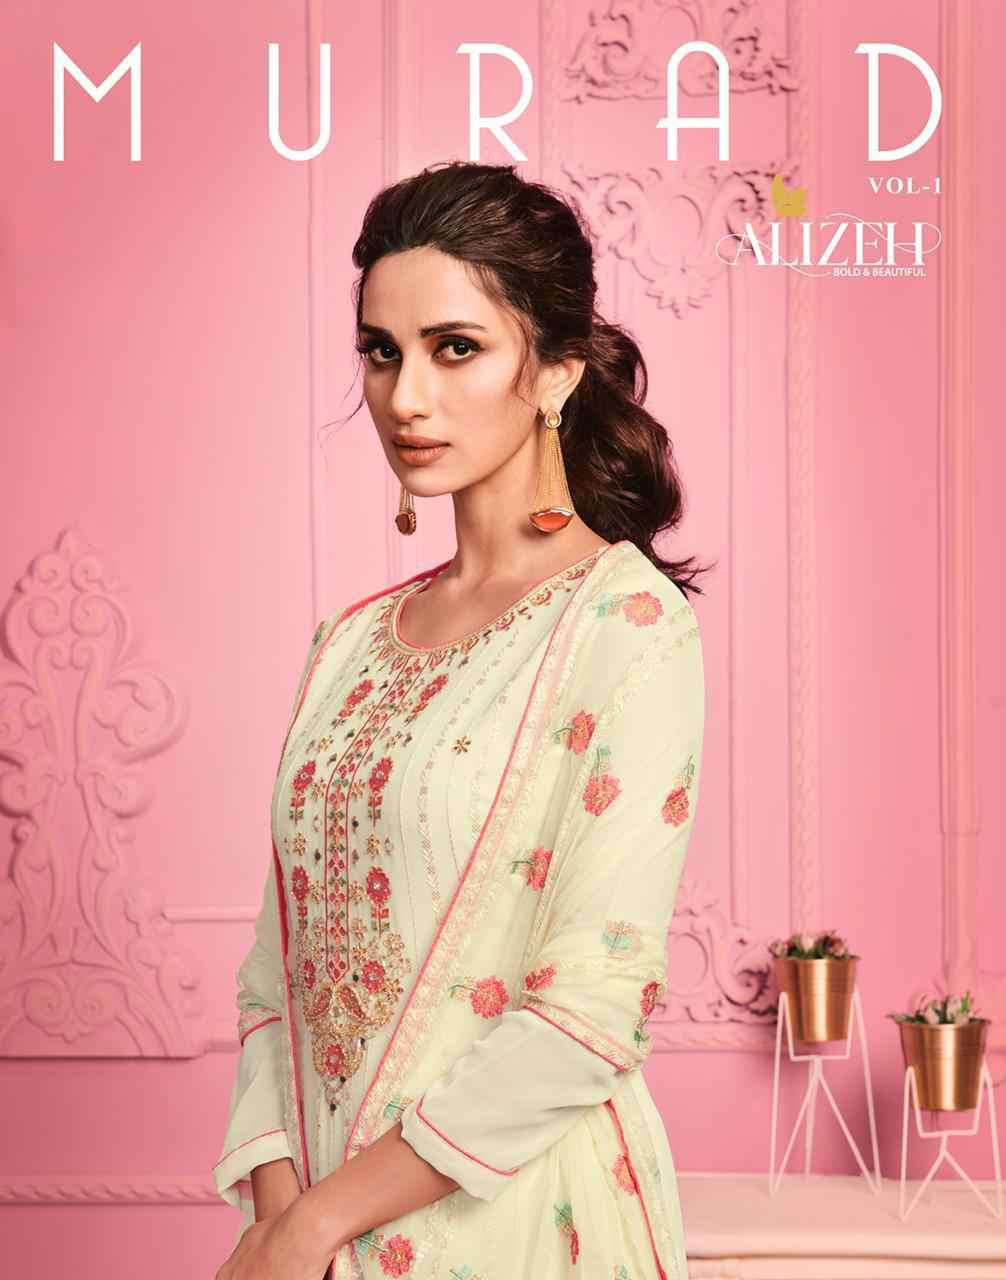 Aliizeh Murad Vol 1 Party Wear Straight Suit Collection at Best Rate